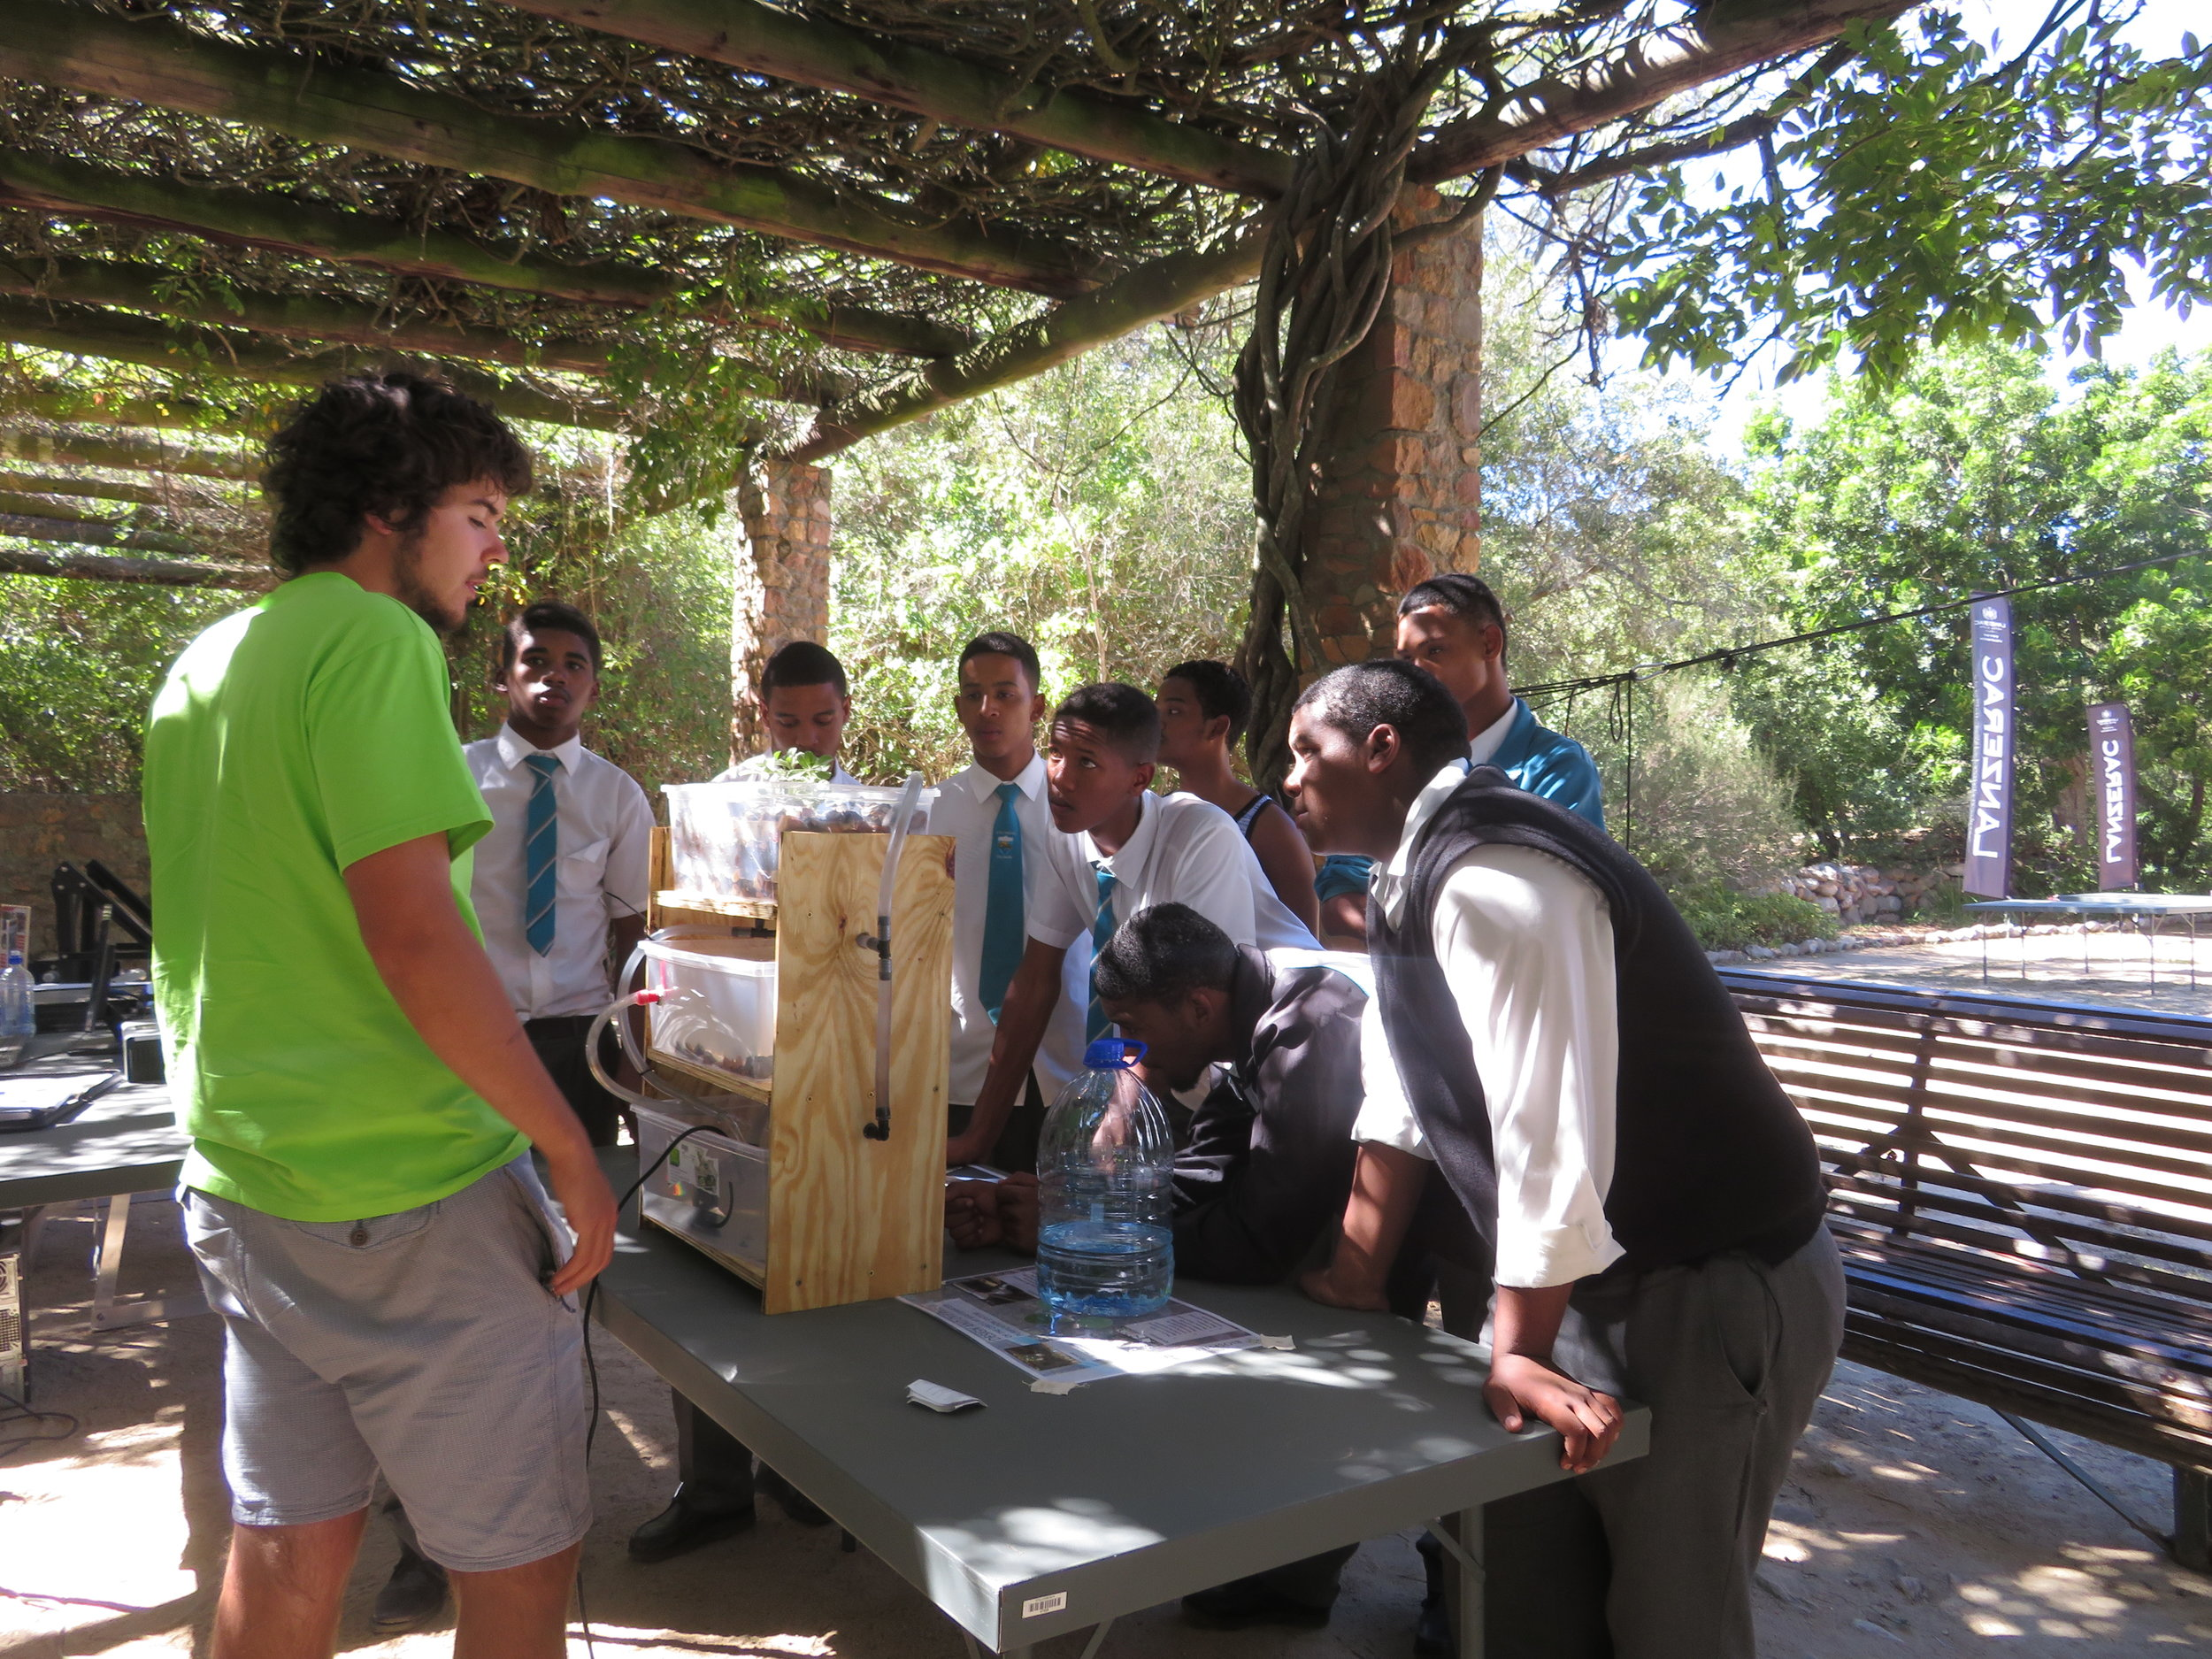 A volunteer showing youth how aquaponics works